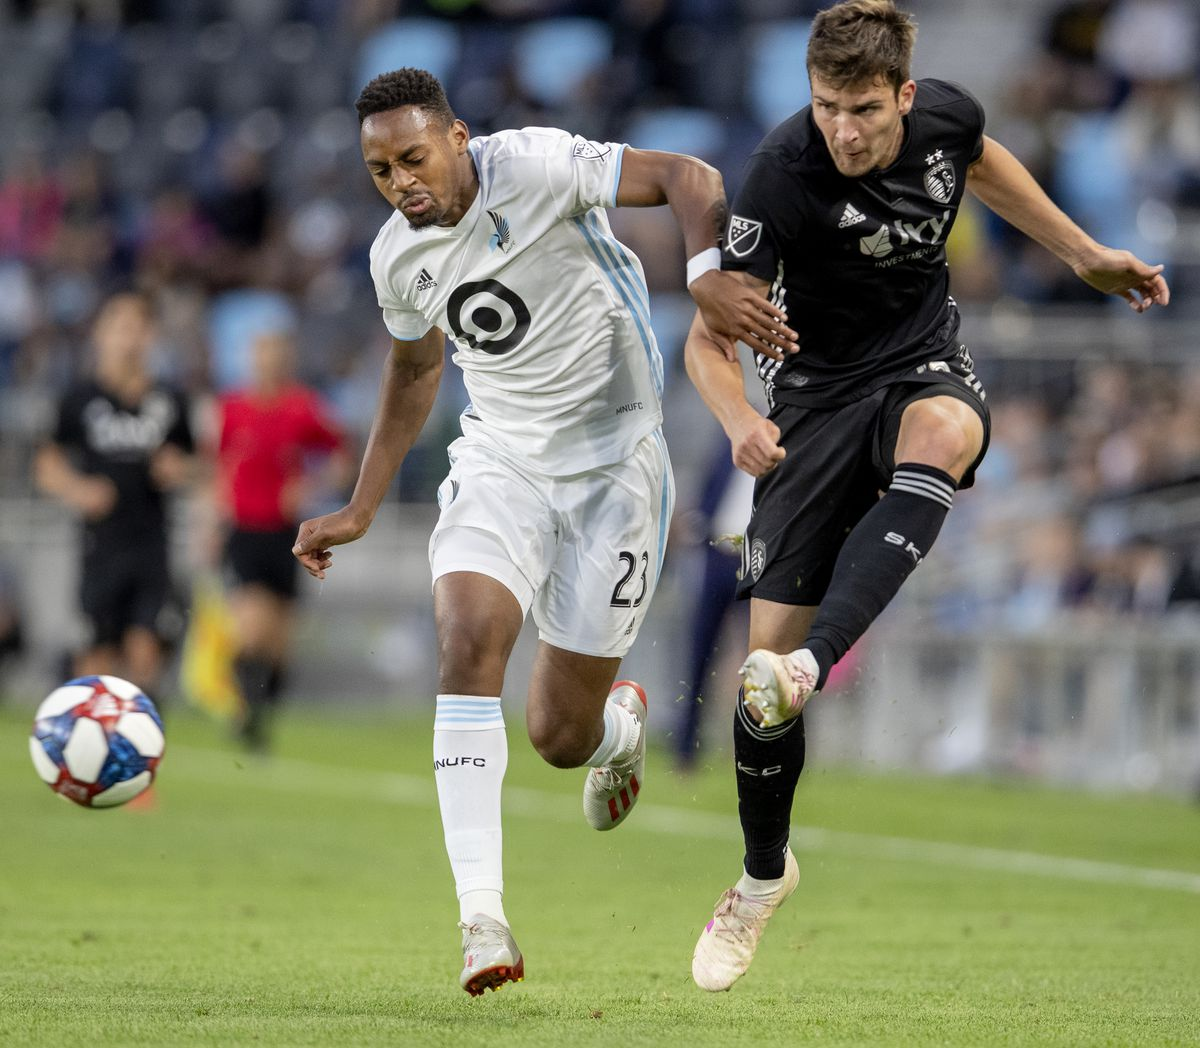 Minnesota United Fc advance in U.S. Open Cup after a win against Sporting Kansas City.